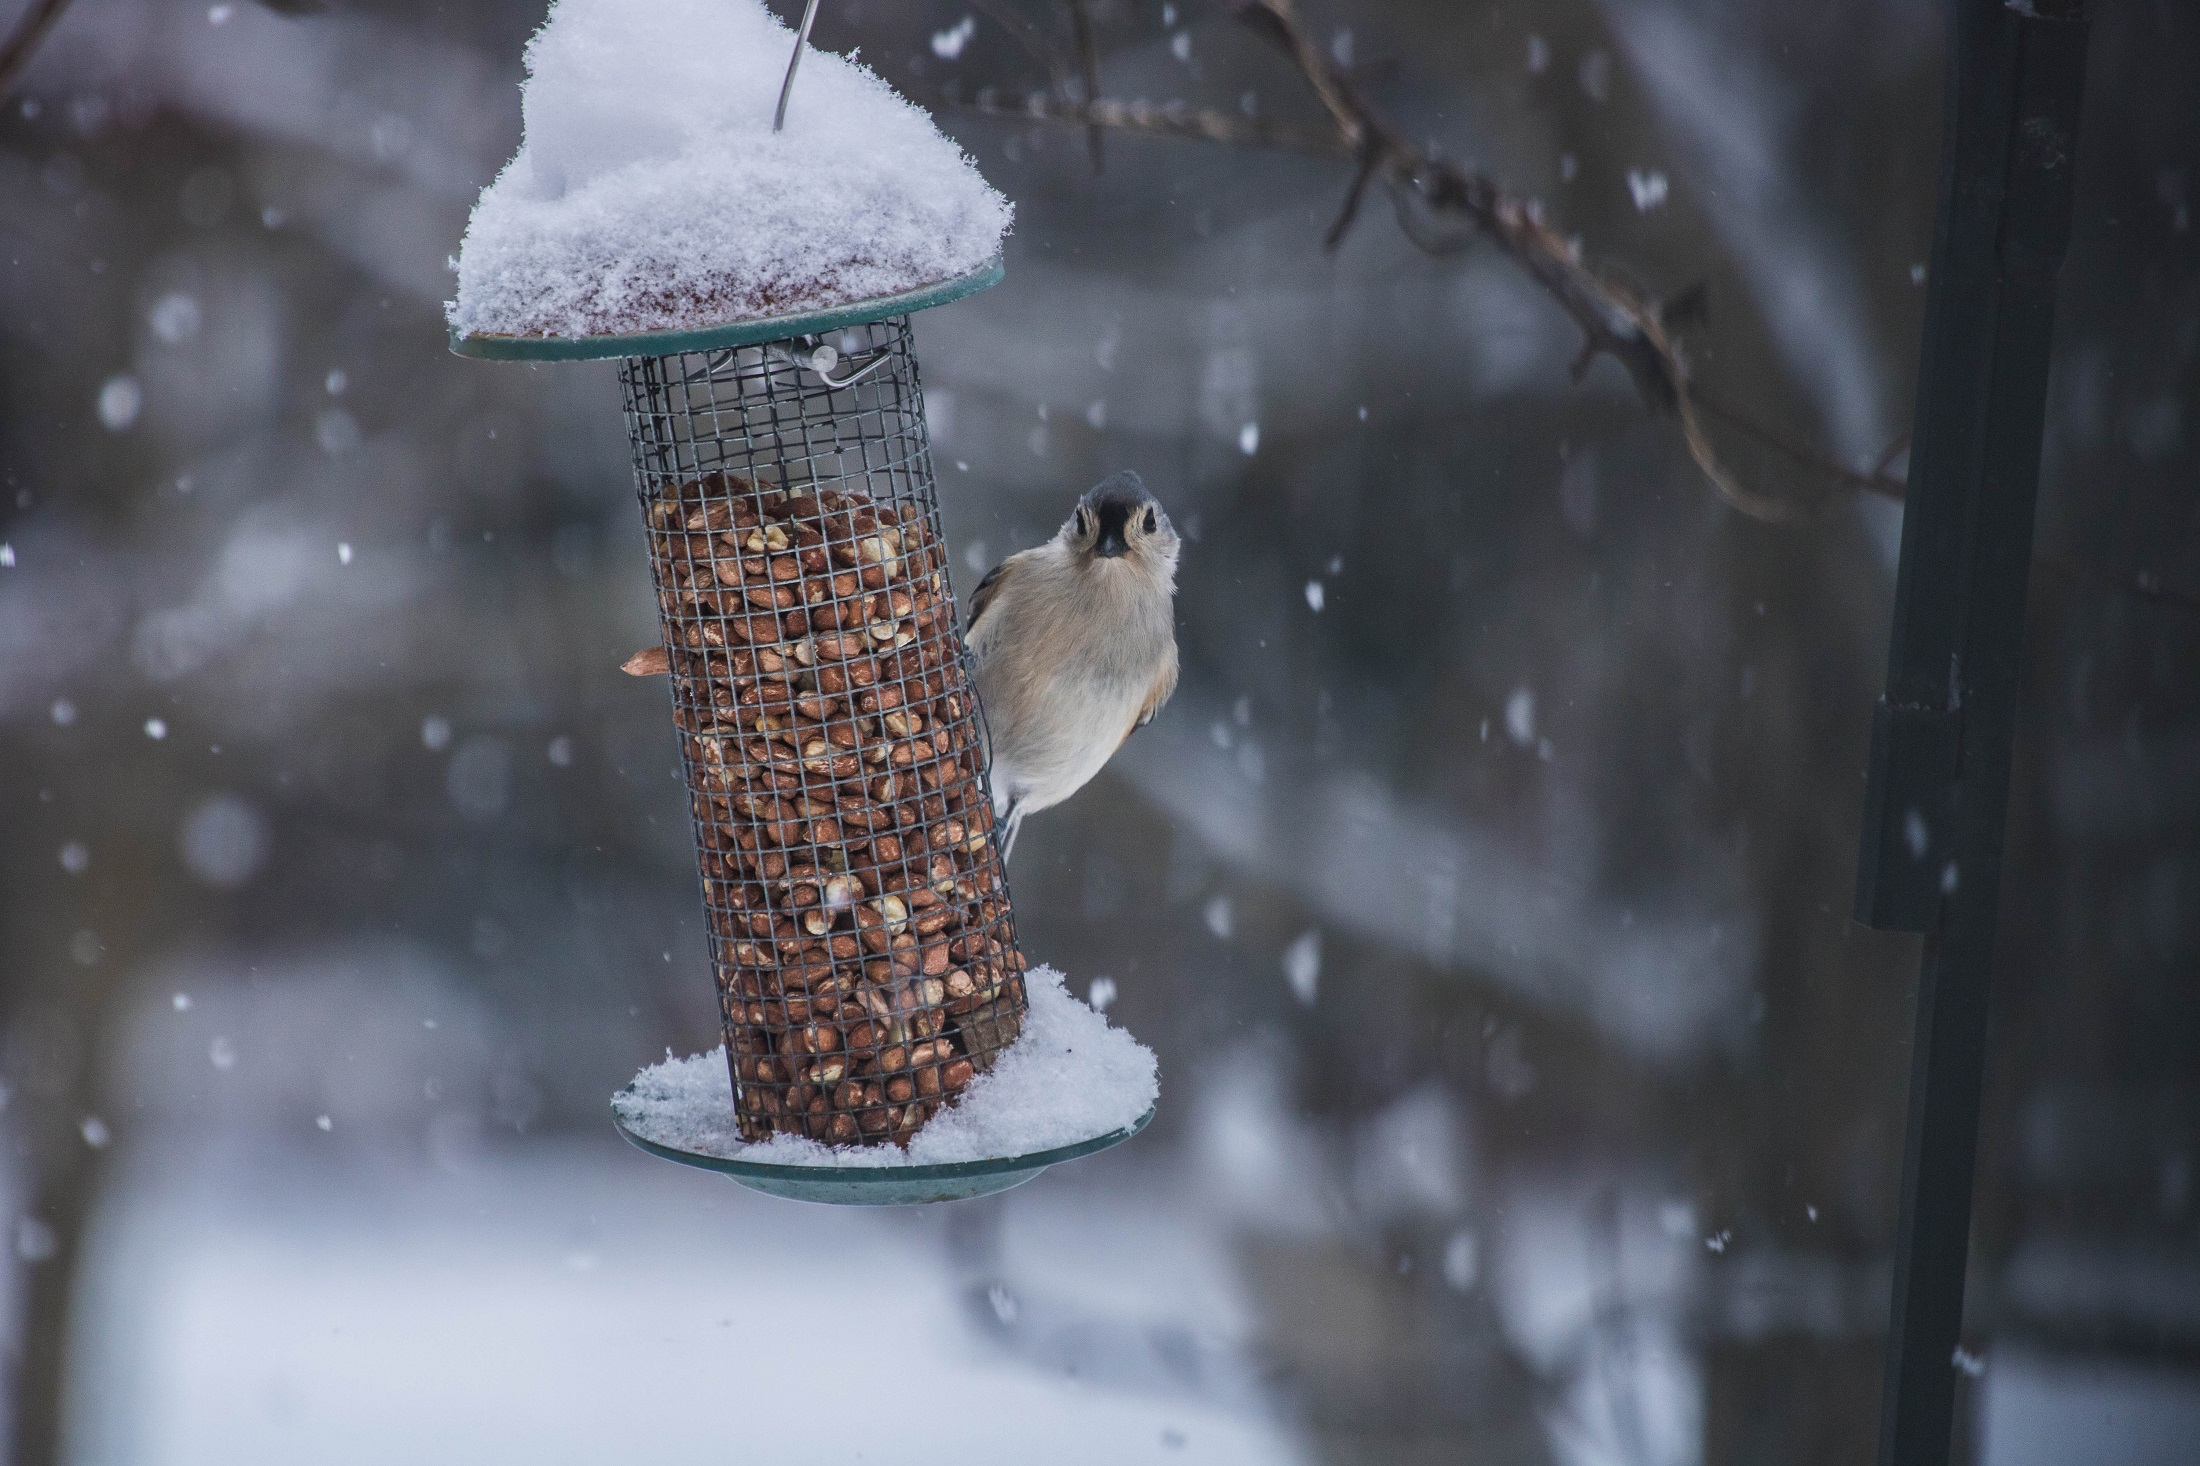 bird at feeder with snow falling